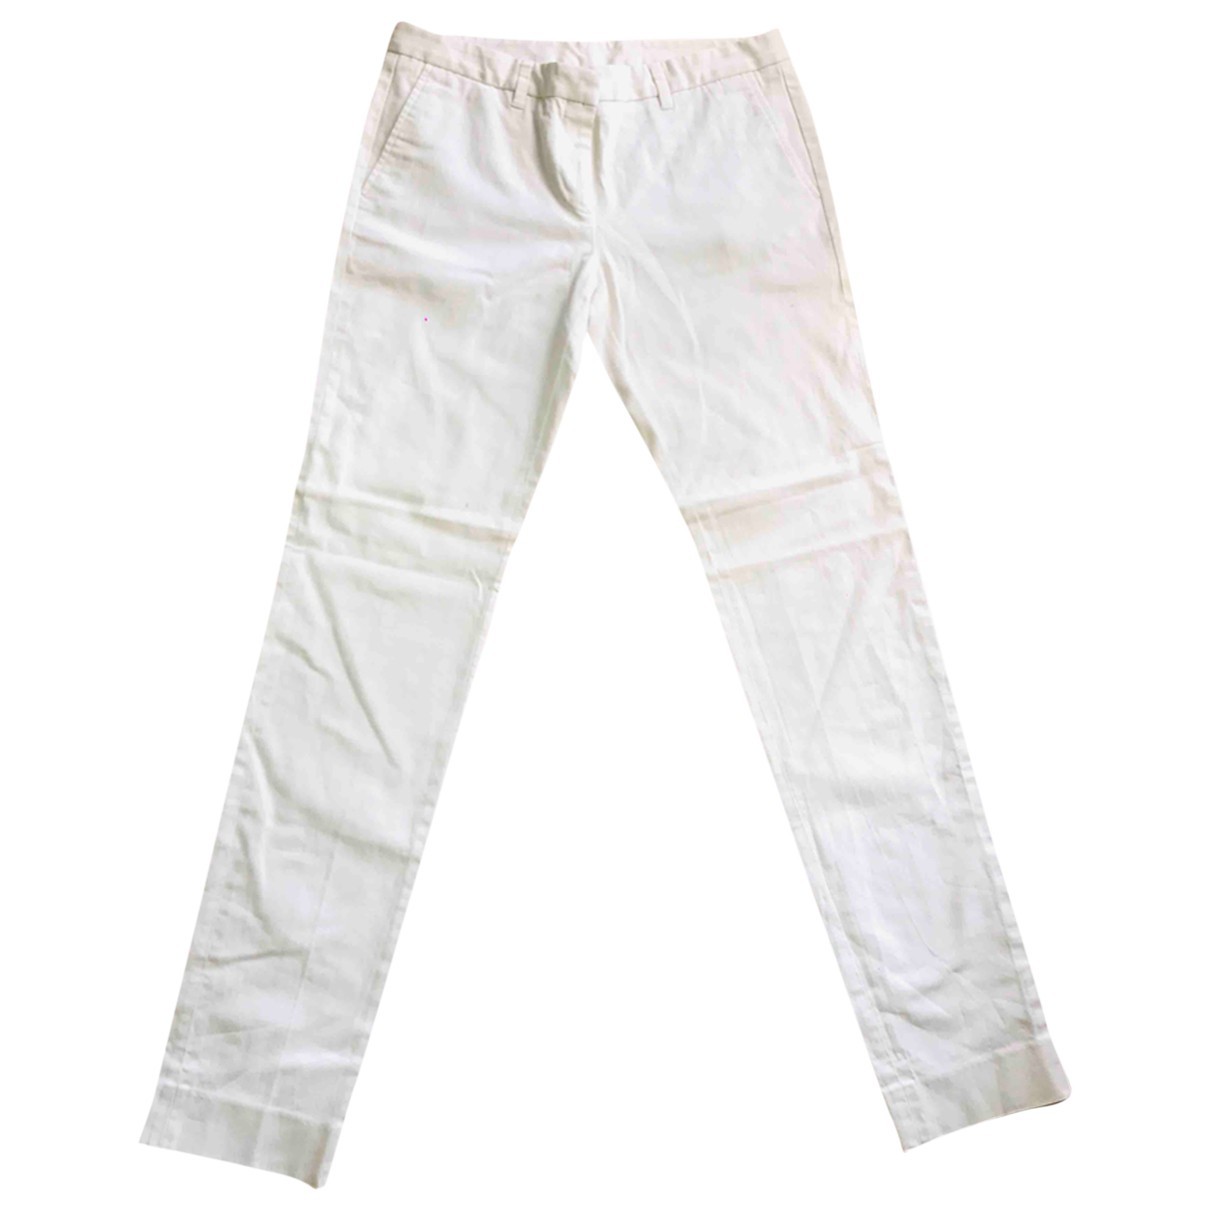 Mauro Grifoni \N White Cotton Trousers for Women 44 IT